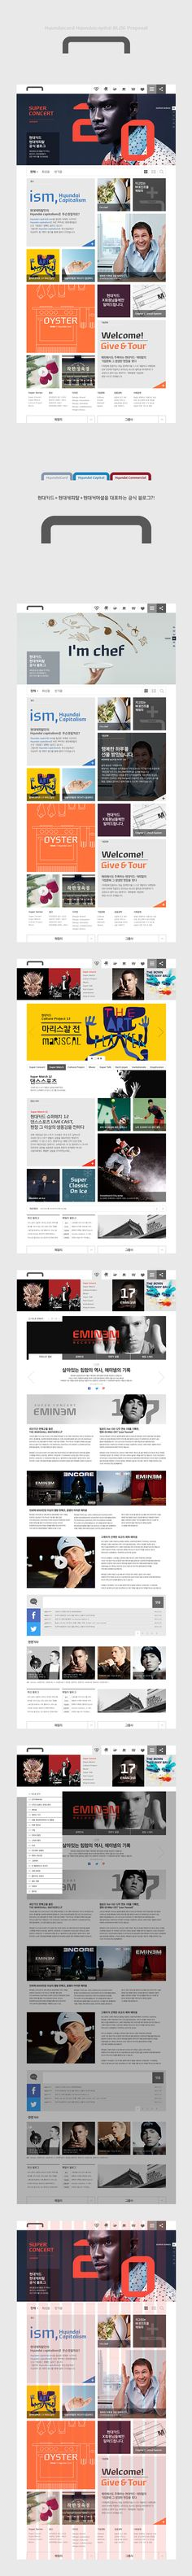 2013 Hyundai card capital Blog on Behance